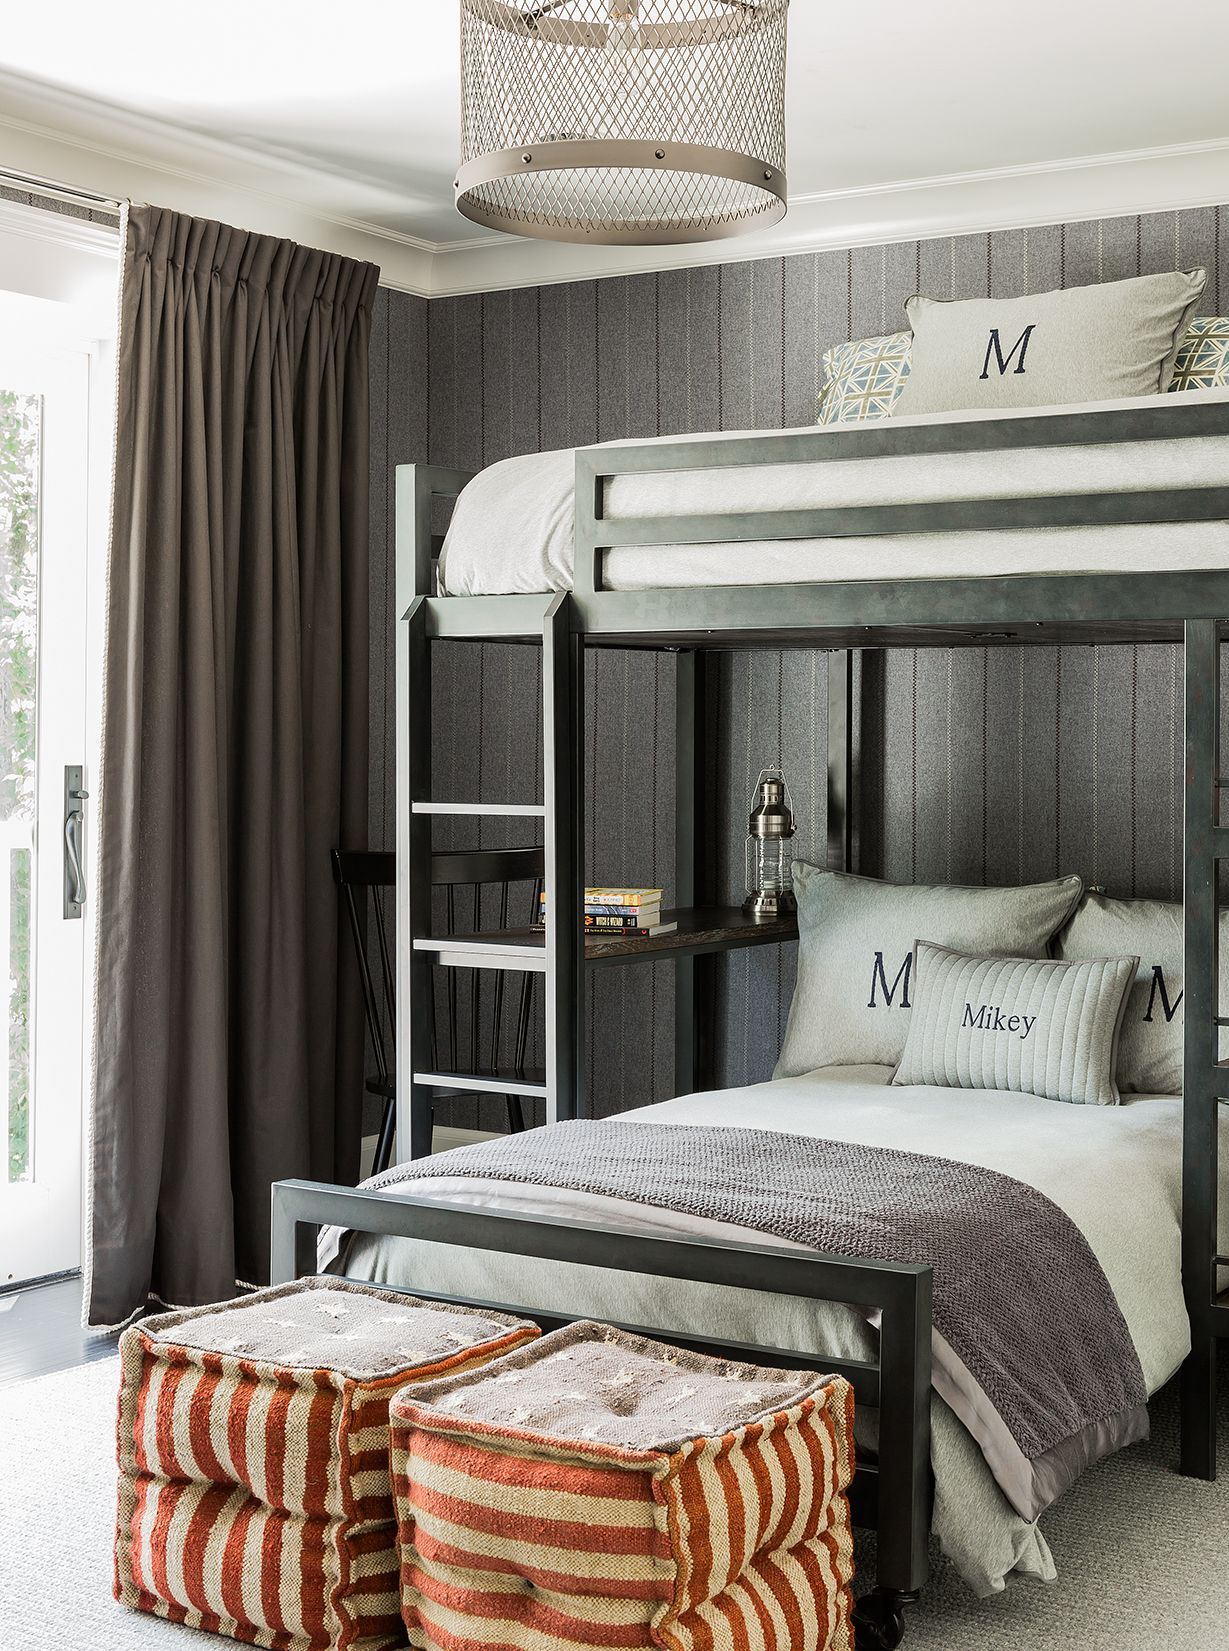 5 Wonderful Ideas Of Triple Bunk Beds For Your Kids Bedroom